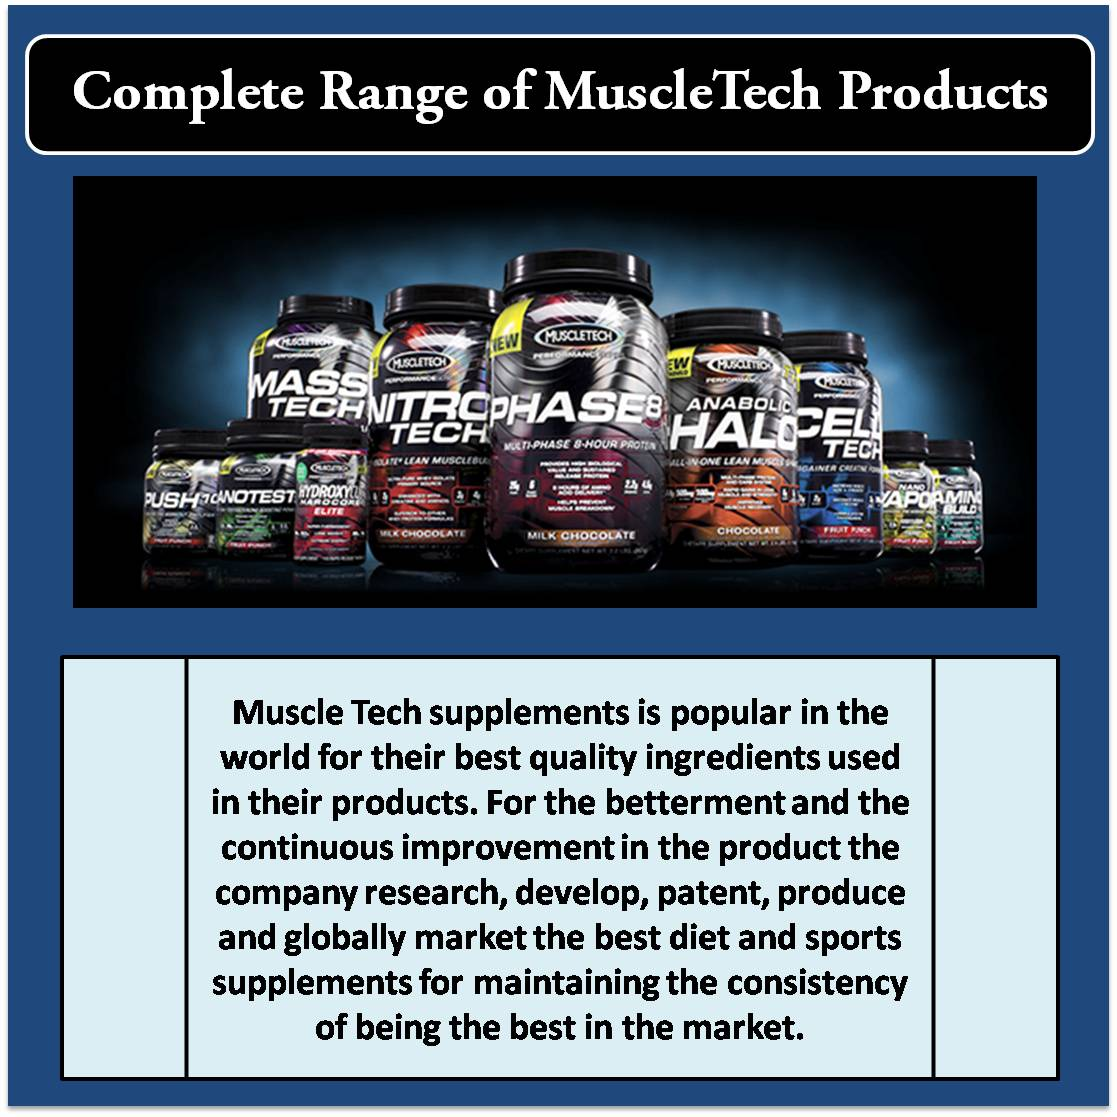 Complete Range of MuscleTech Products